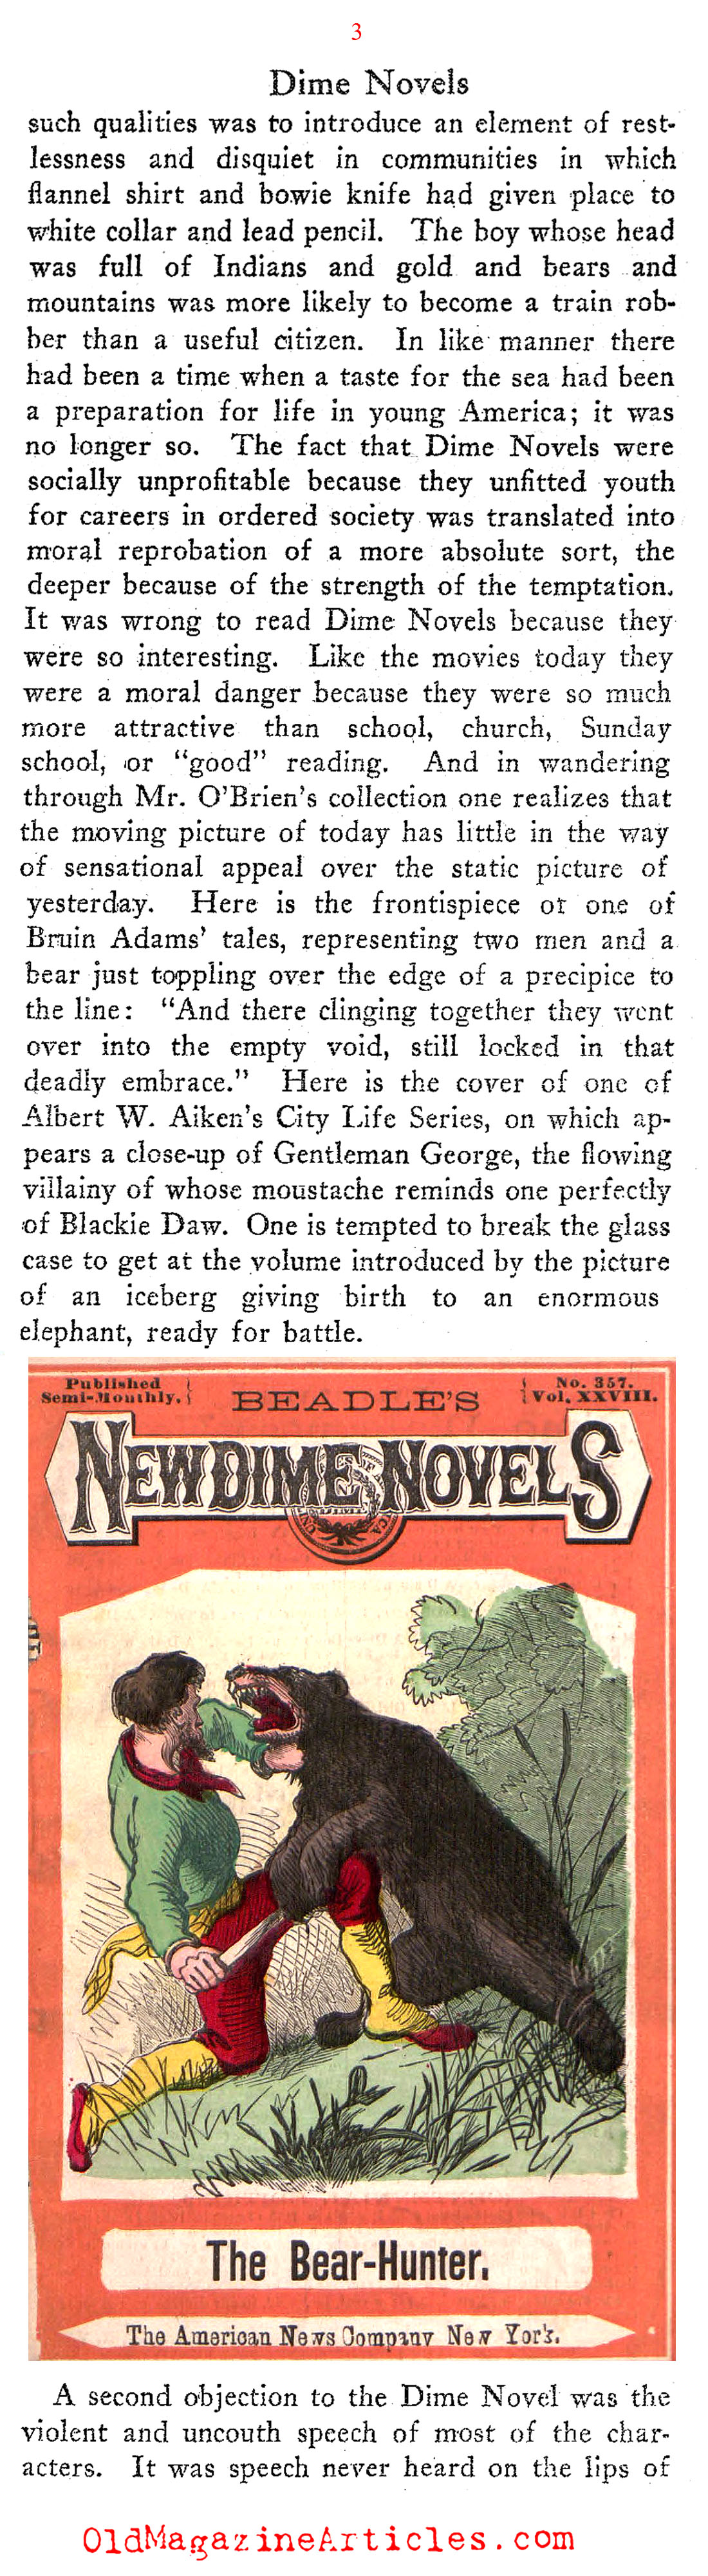 NY Public Library Exhibits Dime Novels (The New Republic, 1922)